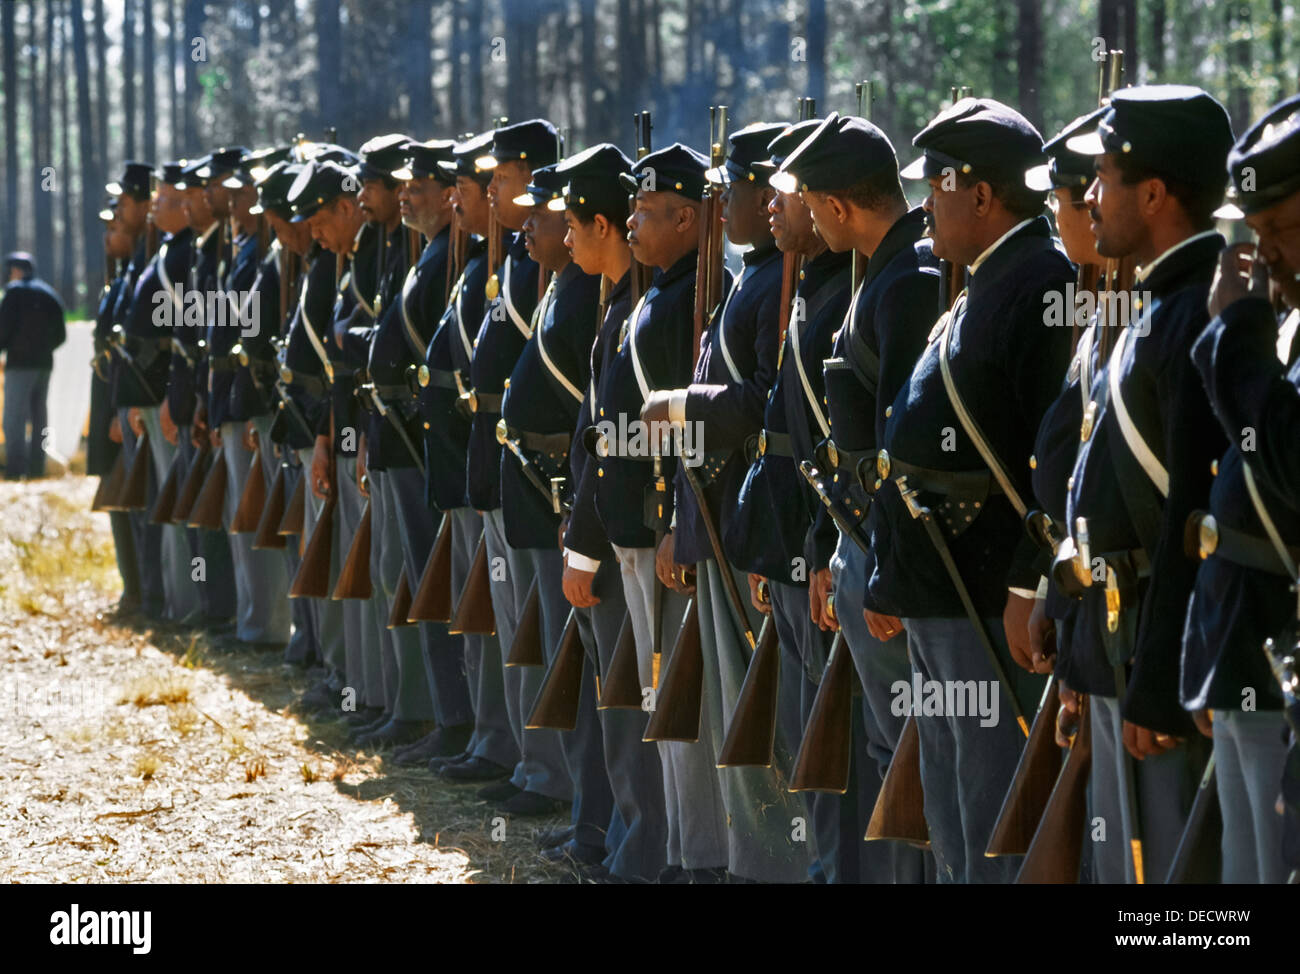 Olustee Battlefield Historic State Park commemorates the site of Florida's largest Civil War battle on February 20, 1864. - Stock Image